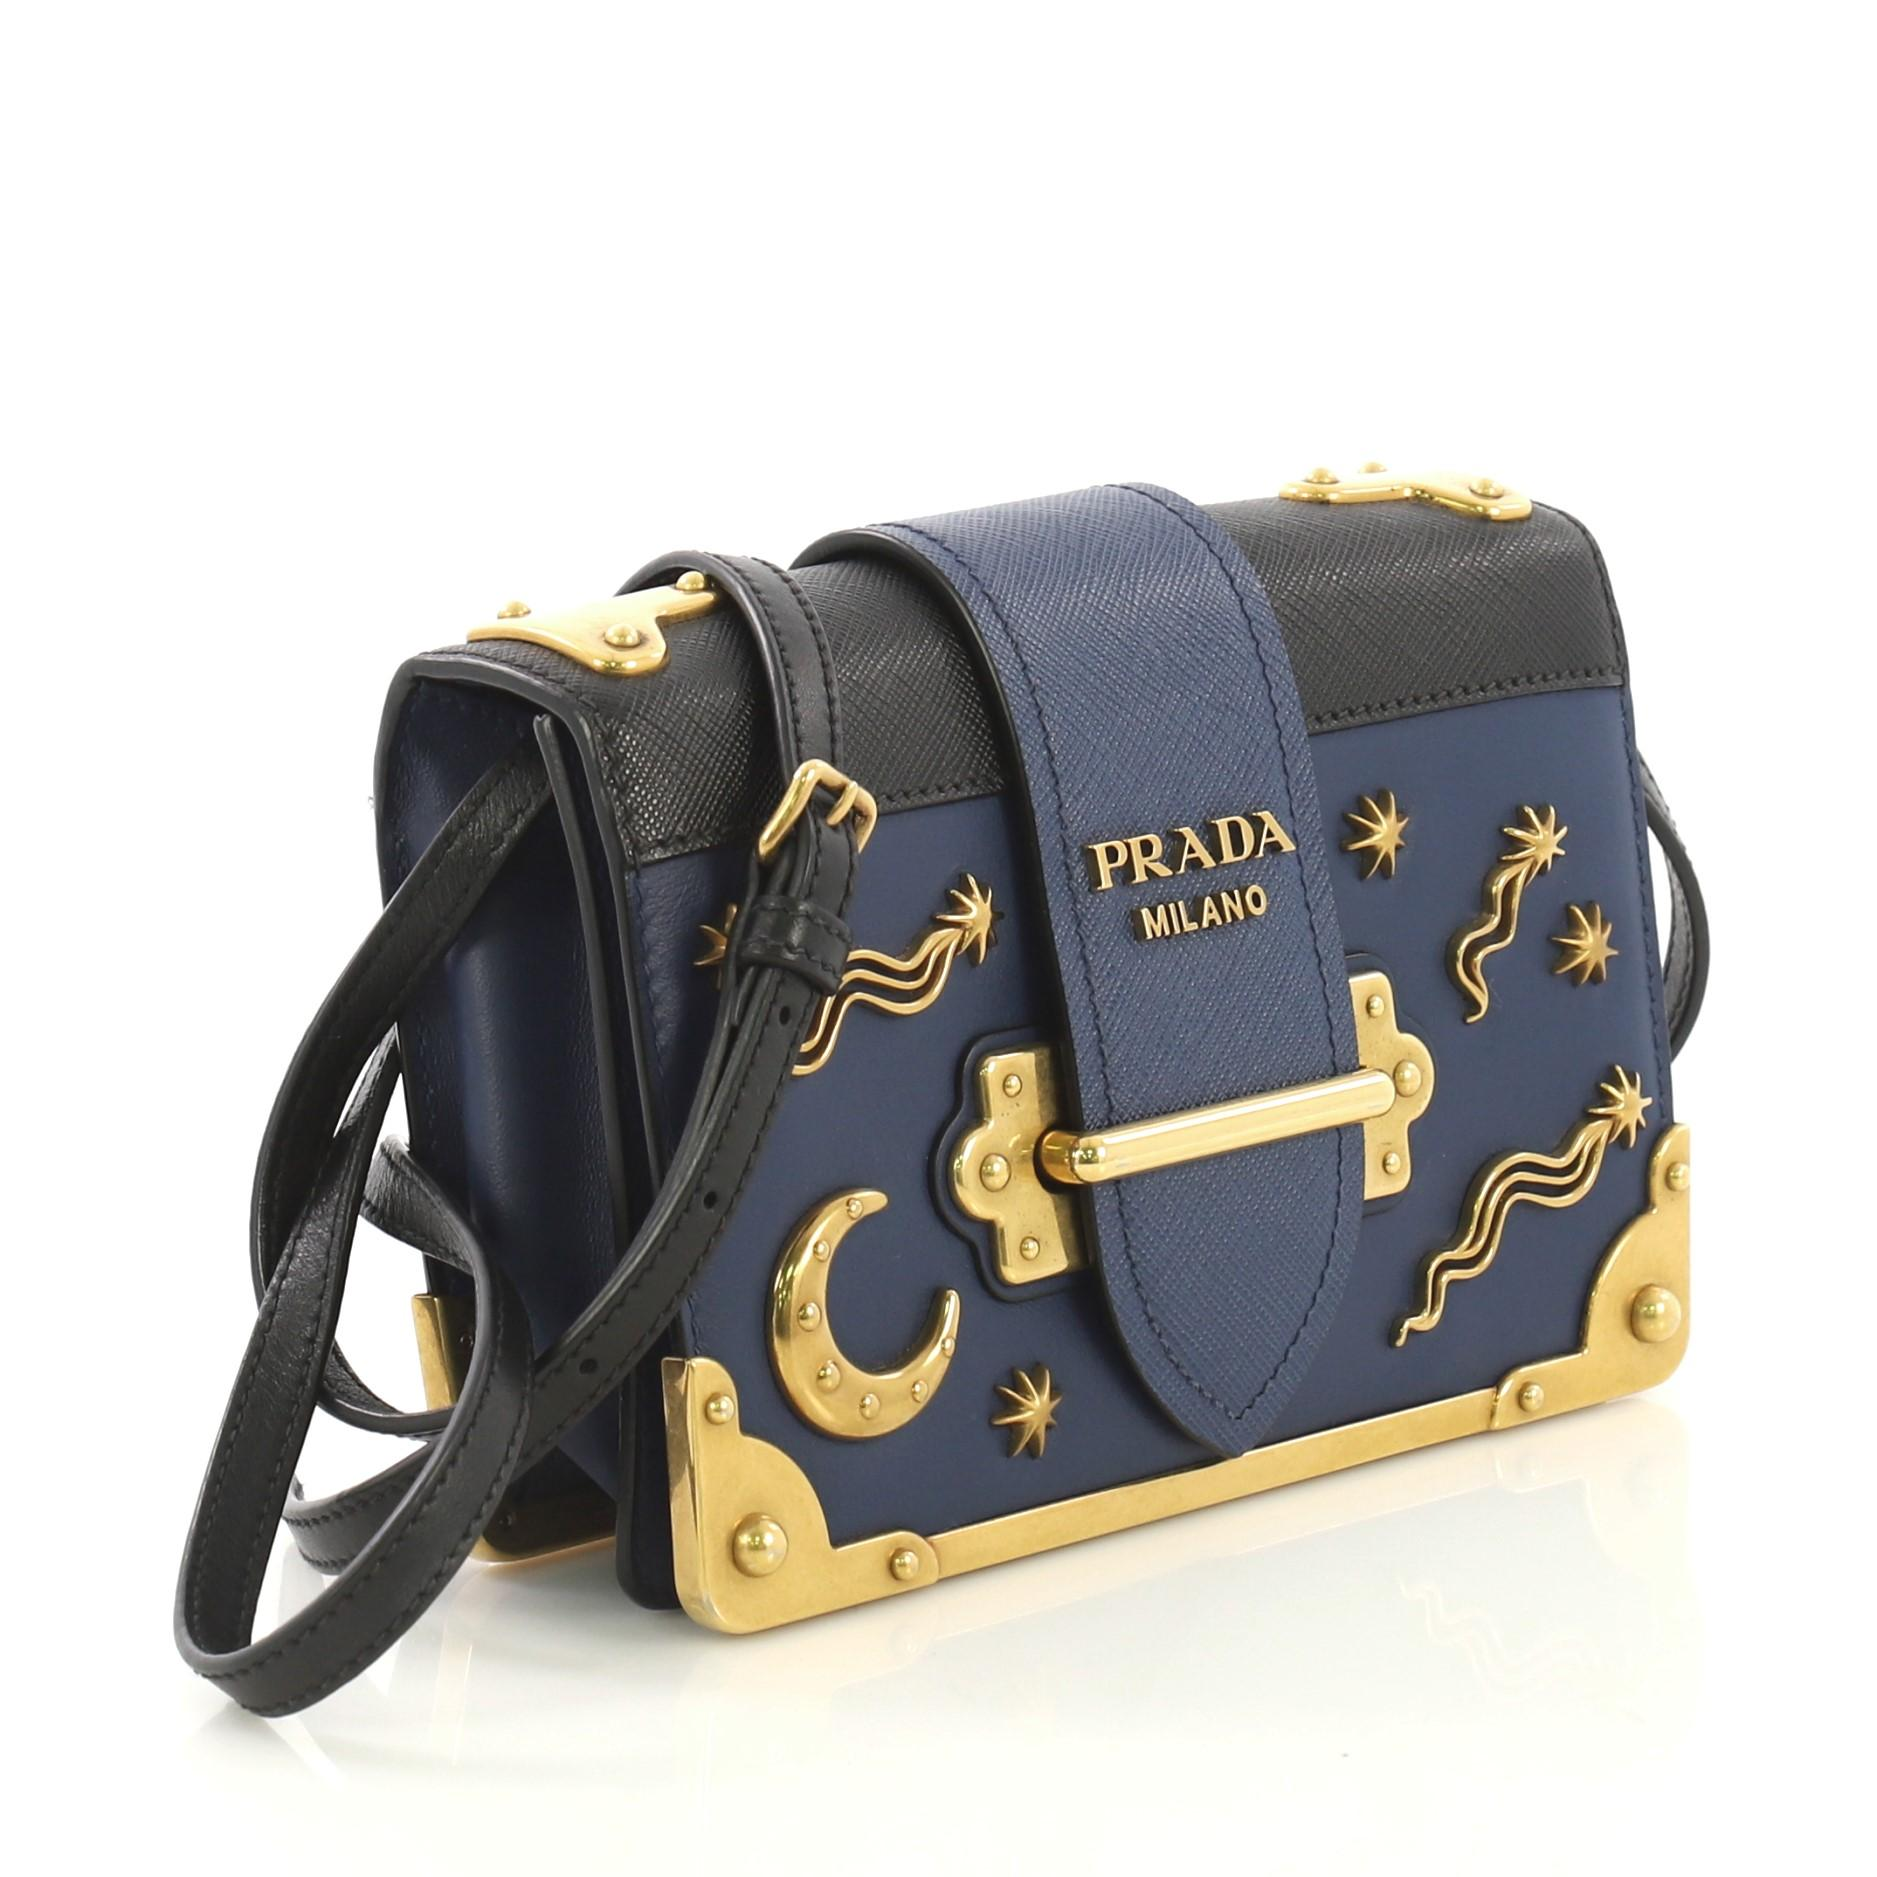 9e7664d941b3 Prada Cahier Crossbody Bag Embellished Leather Small For Sale at 1stdibs